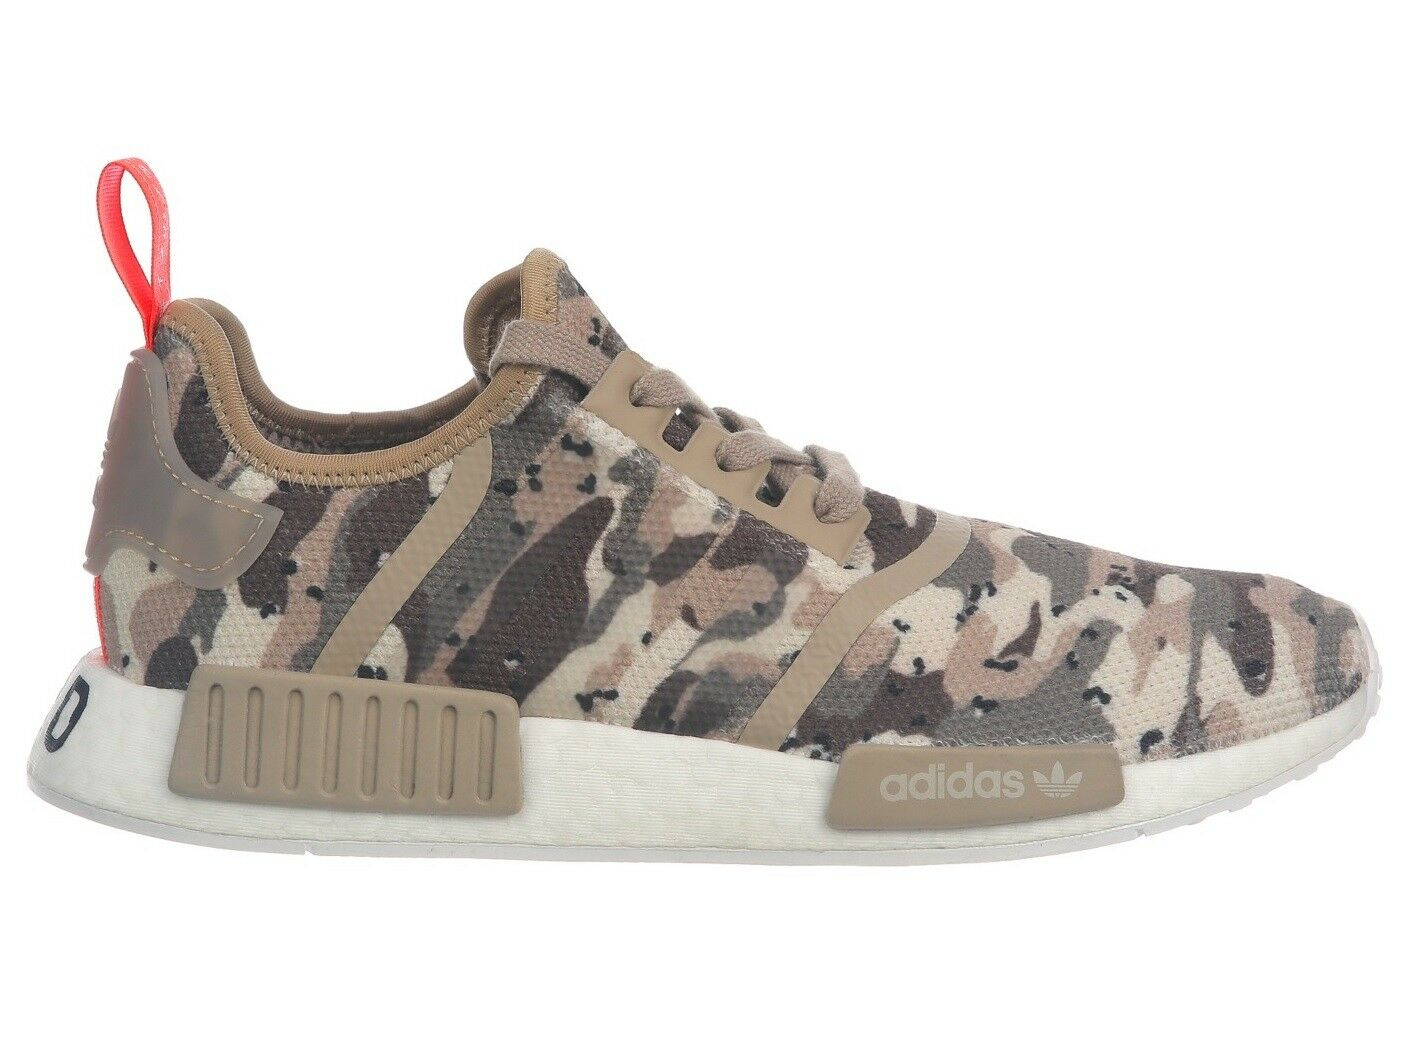 Adidas NMD R1 Camo Pack Mens G27915 Clear Brown Boost Running shoes Size 11.5